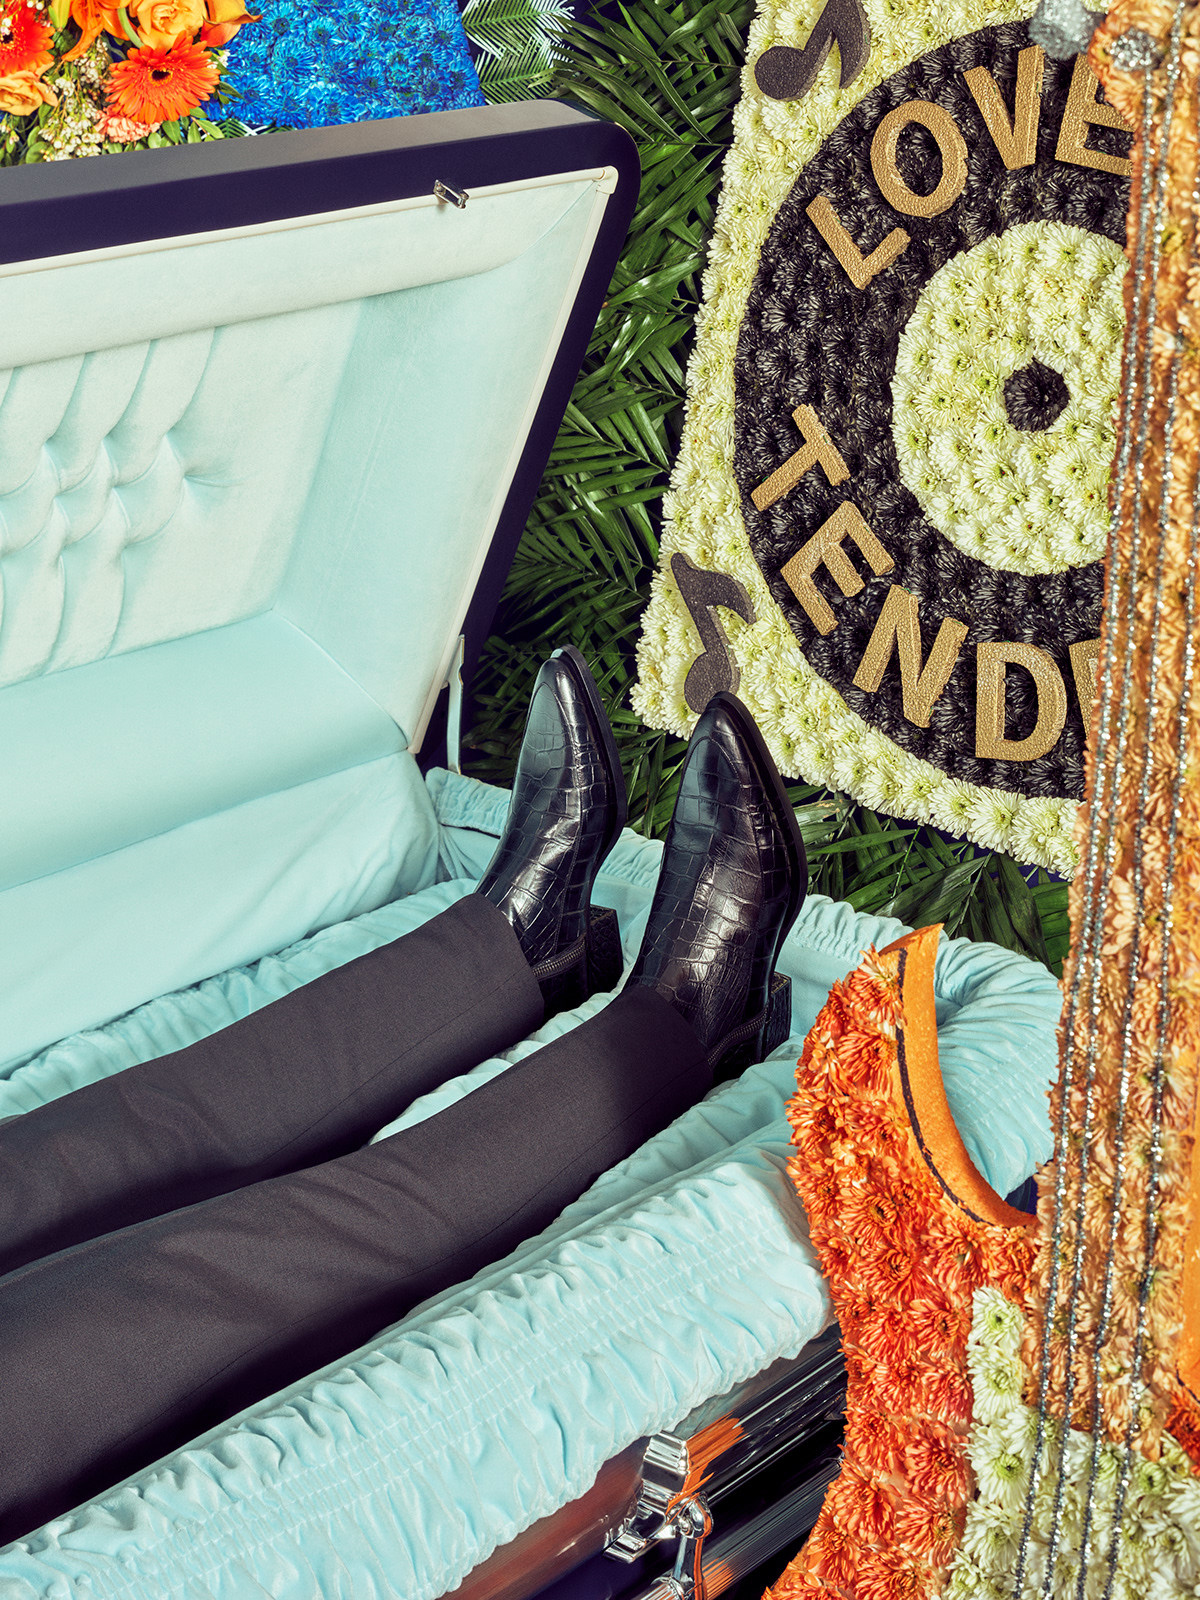 """<p """"="""""""">A photograph of the lower half of an open casket, showing the decedent's legs and boots. The casket is surrounded by colorful floral arrangements, including one shaped to look like an electric bass guitar."""